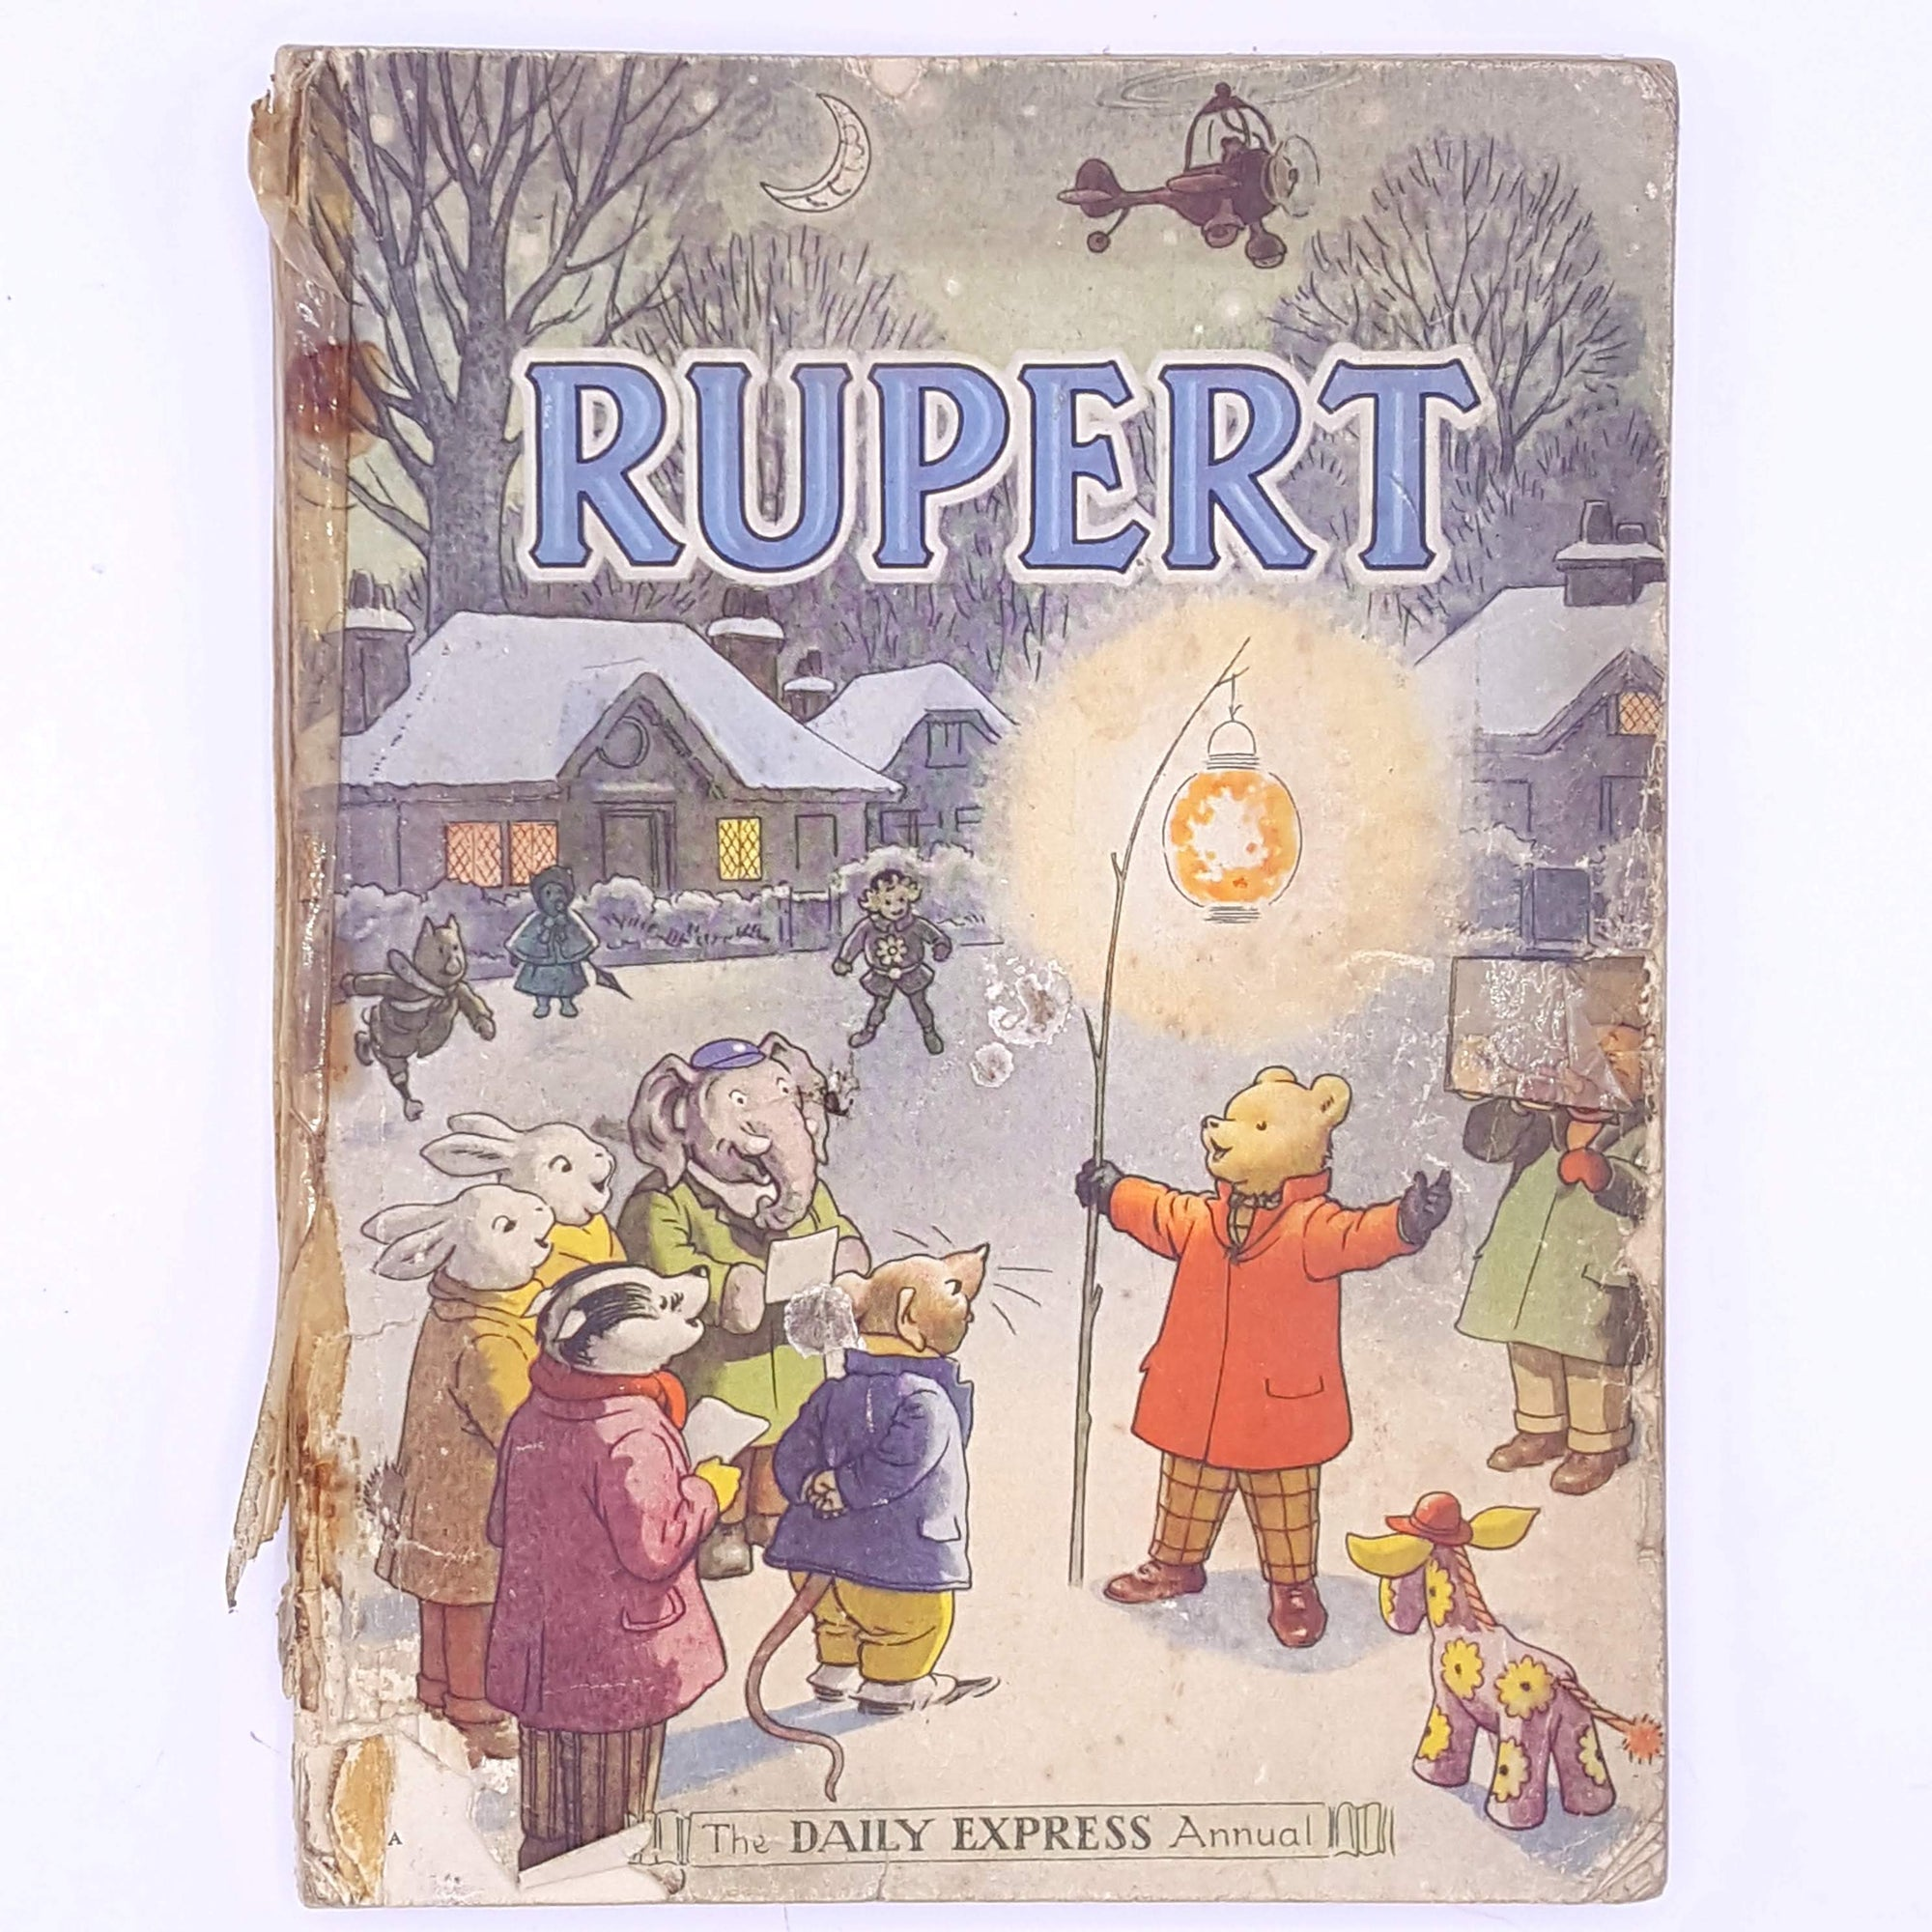 rupert-patterned-antique-rupert-the-bear-thrift-annual-classic-books-vintage-for-kids-old-decorative-christmas-gifts-country-house-library-